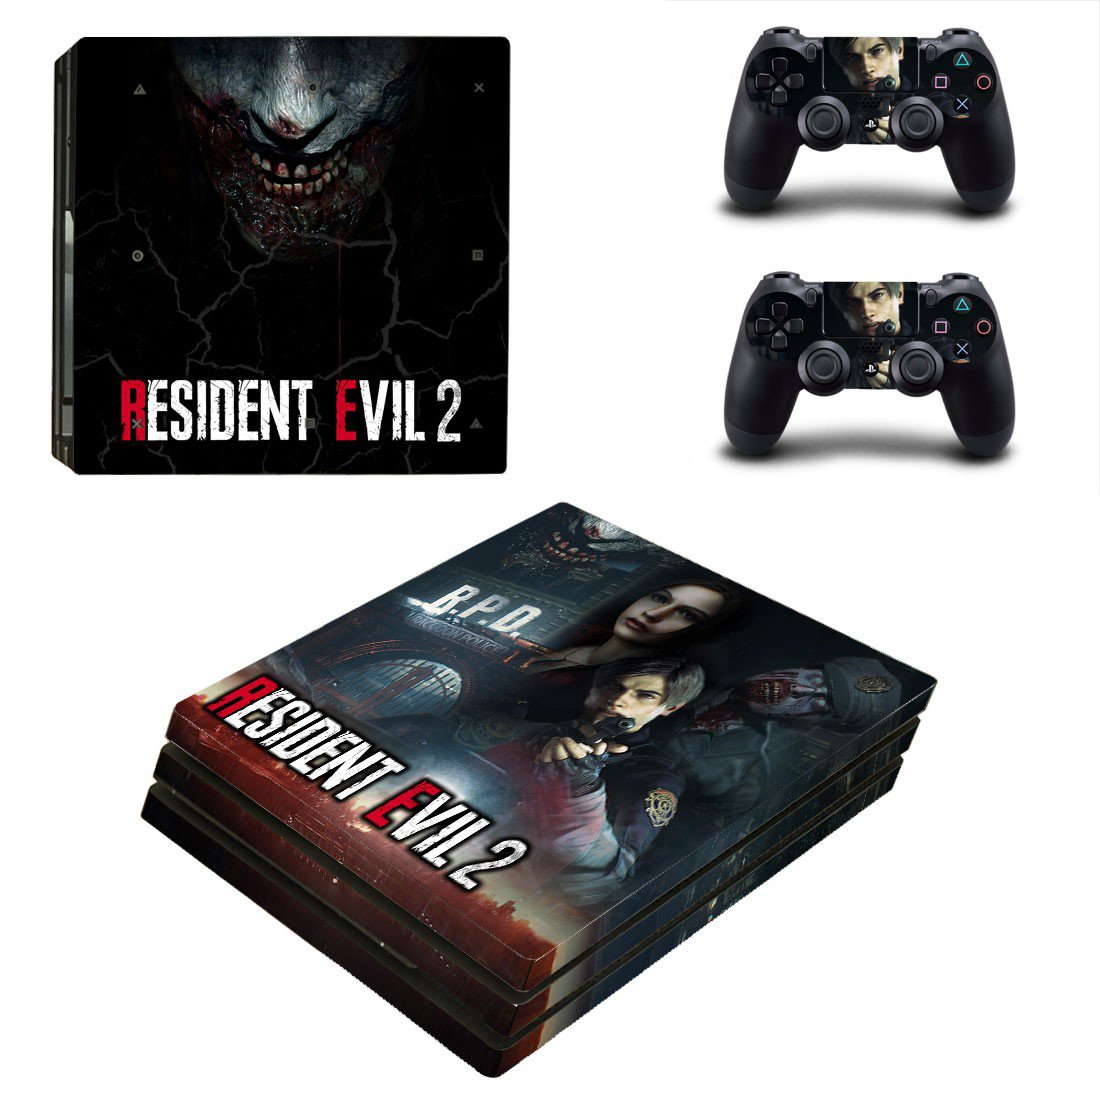 Resident Evil 2 decal skin sticker for PS4 Pro console and controllers